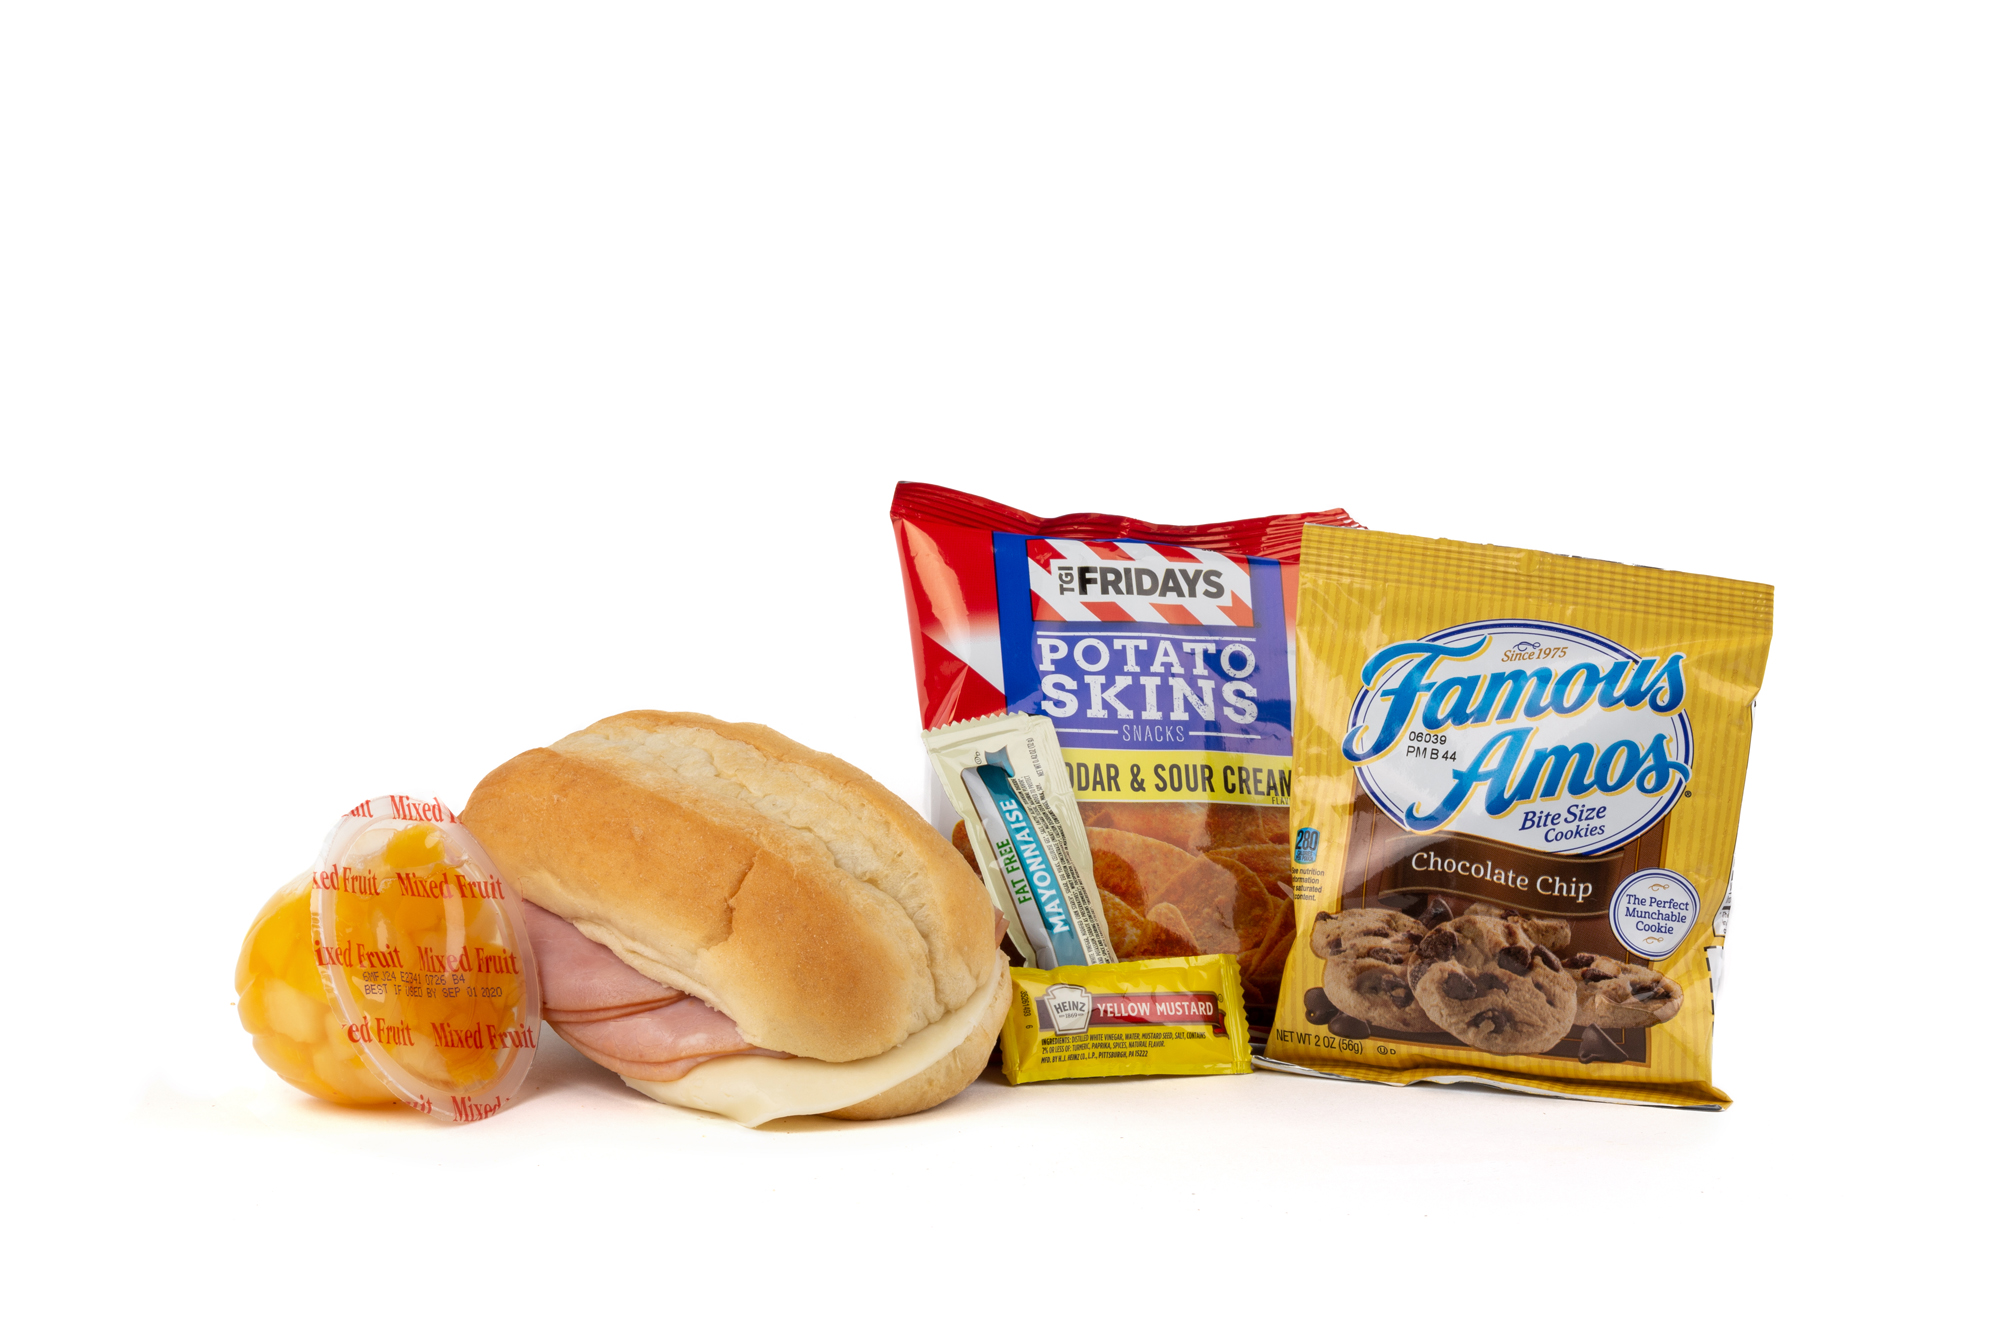 FK01ND - Ham/Provolone Sandwich - Frozen NO DRINK NAPA 894001E619559  Sandwich - Ham/Provolone on Sub Bun Frozen Chip Potato TGIF Cheddar Bacon Mixed Fruit Cup Cookie Choc Chip Famous Amos Mayonnaise Packet Fatfree Dressing Mustard Packet Candy Mint Starlight Spearmint